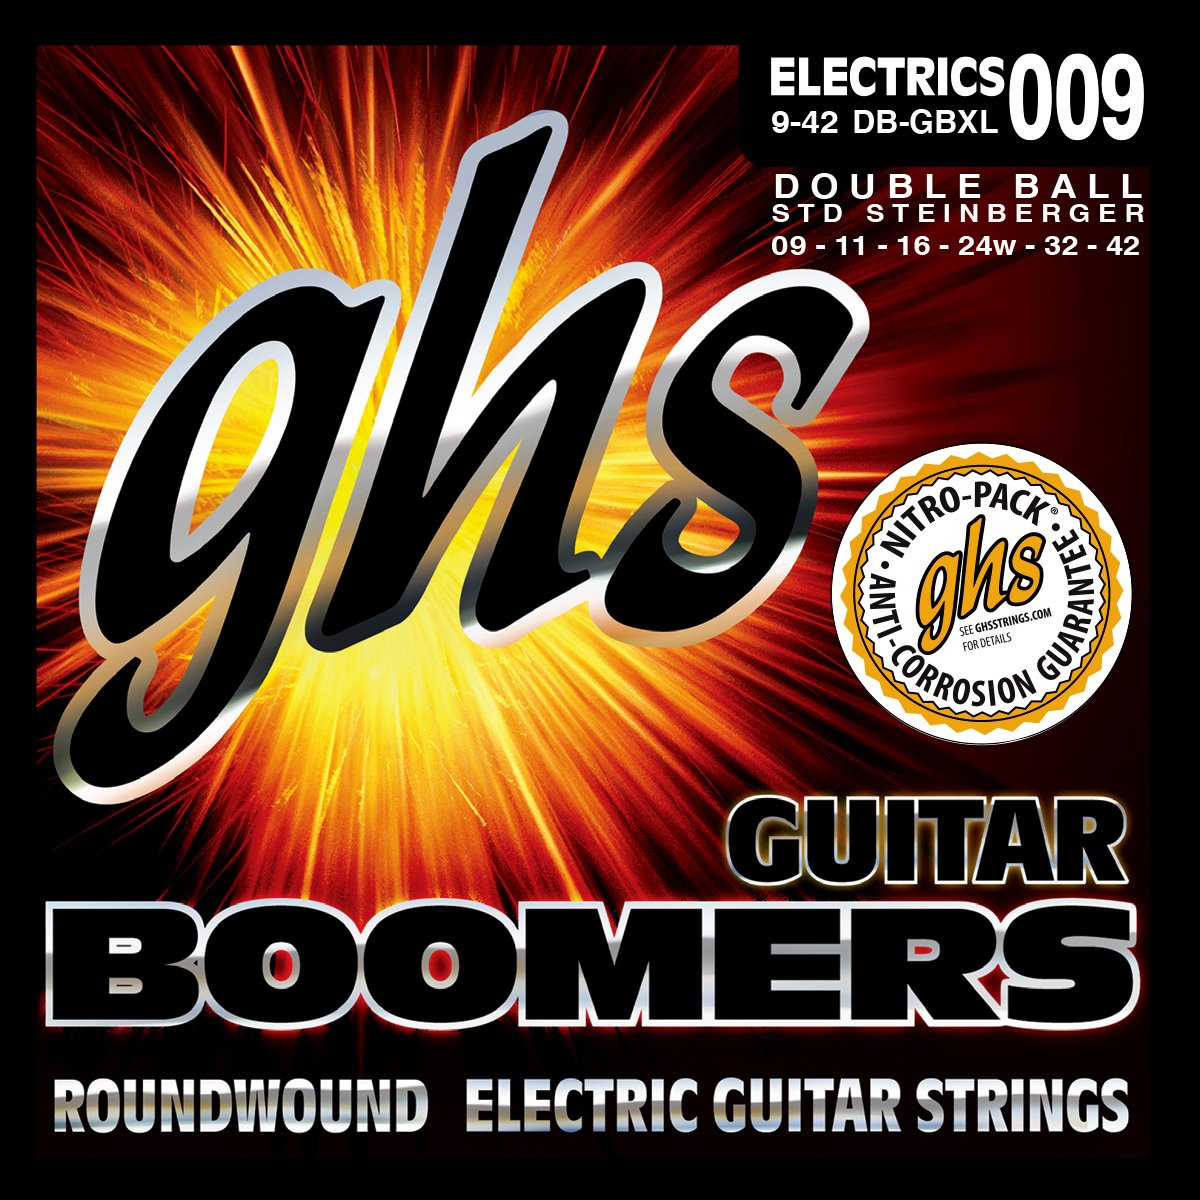 GHS GBXL Boomers Roundwound Electric Guitar Strings